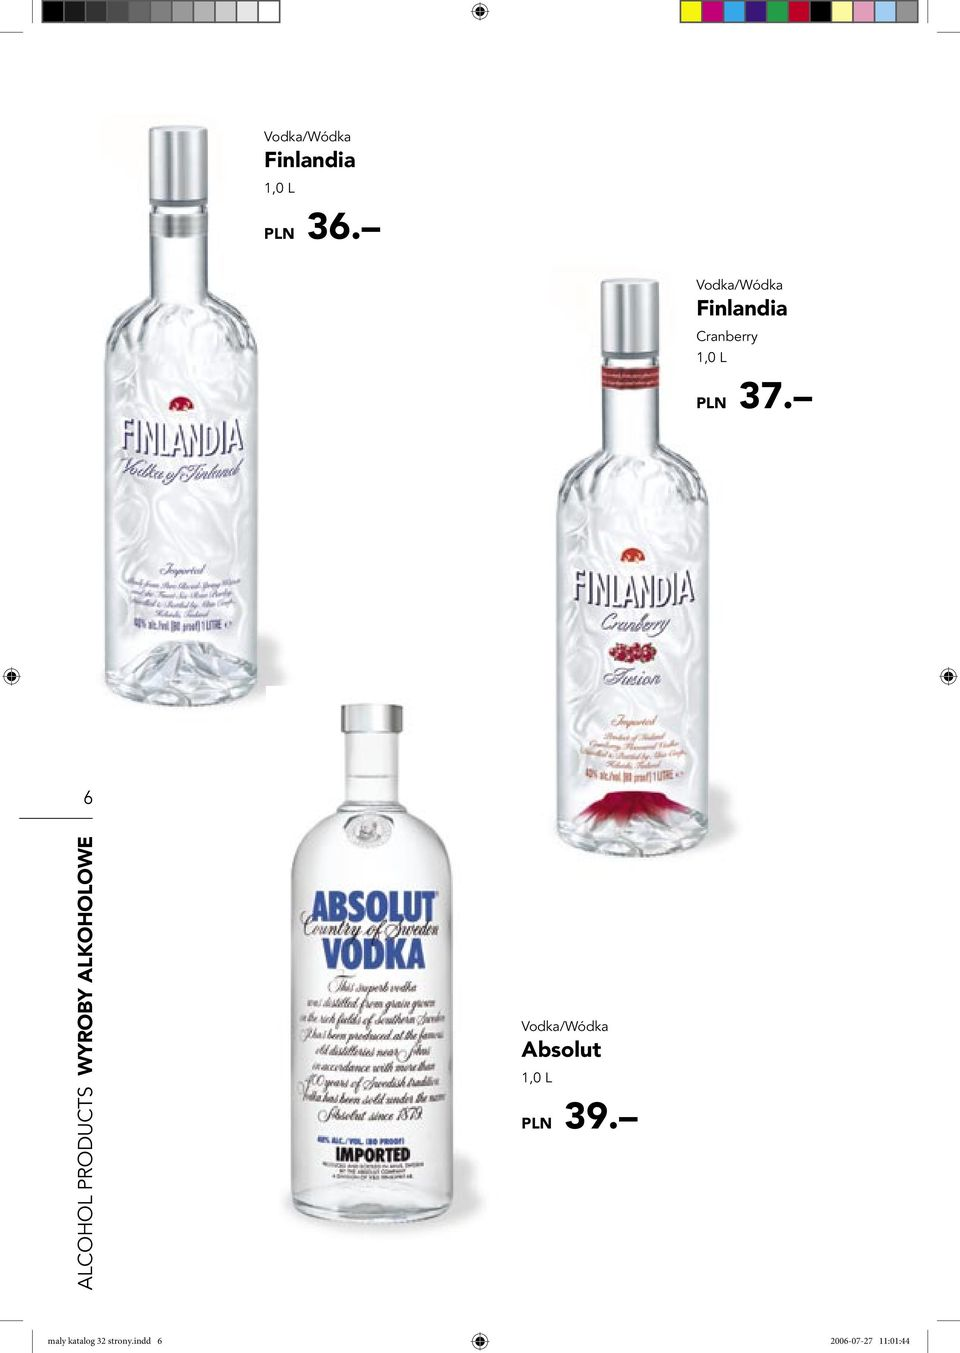 6 ALCOHOL PRODUCTS WYROBY ALKOHOLOWE Vodka/Wódka